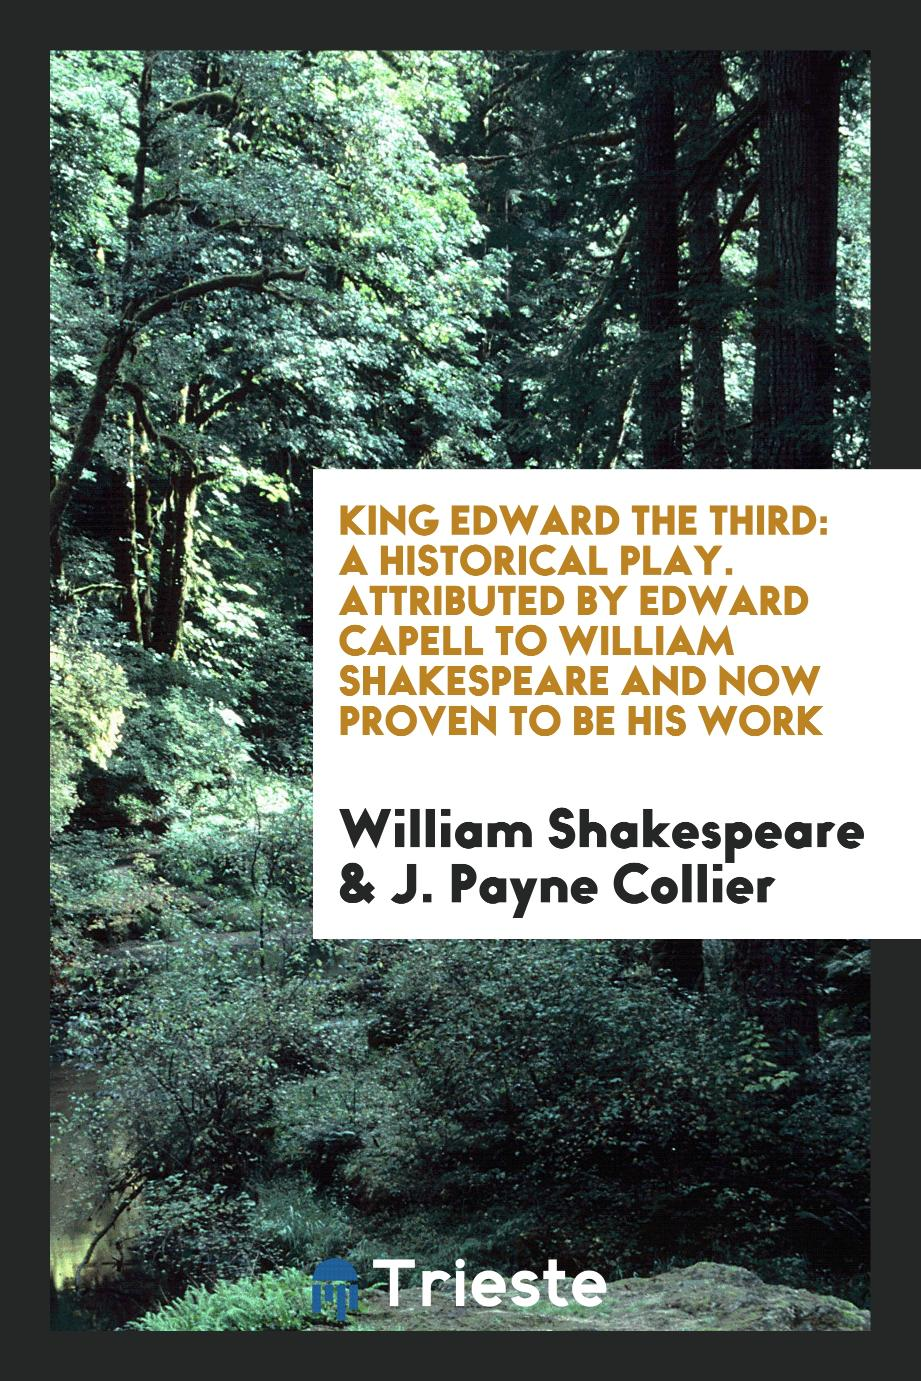 King Edward the Third: A Historical Play. Attributed by Edward Capell to William Shakespeare and Now Proven to Be His Work